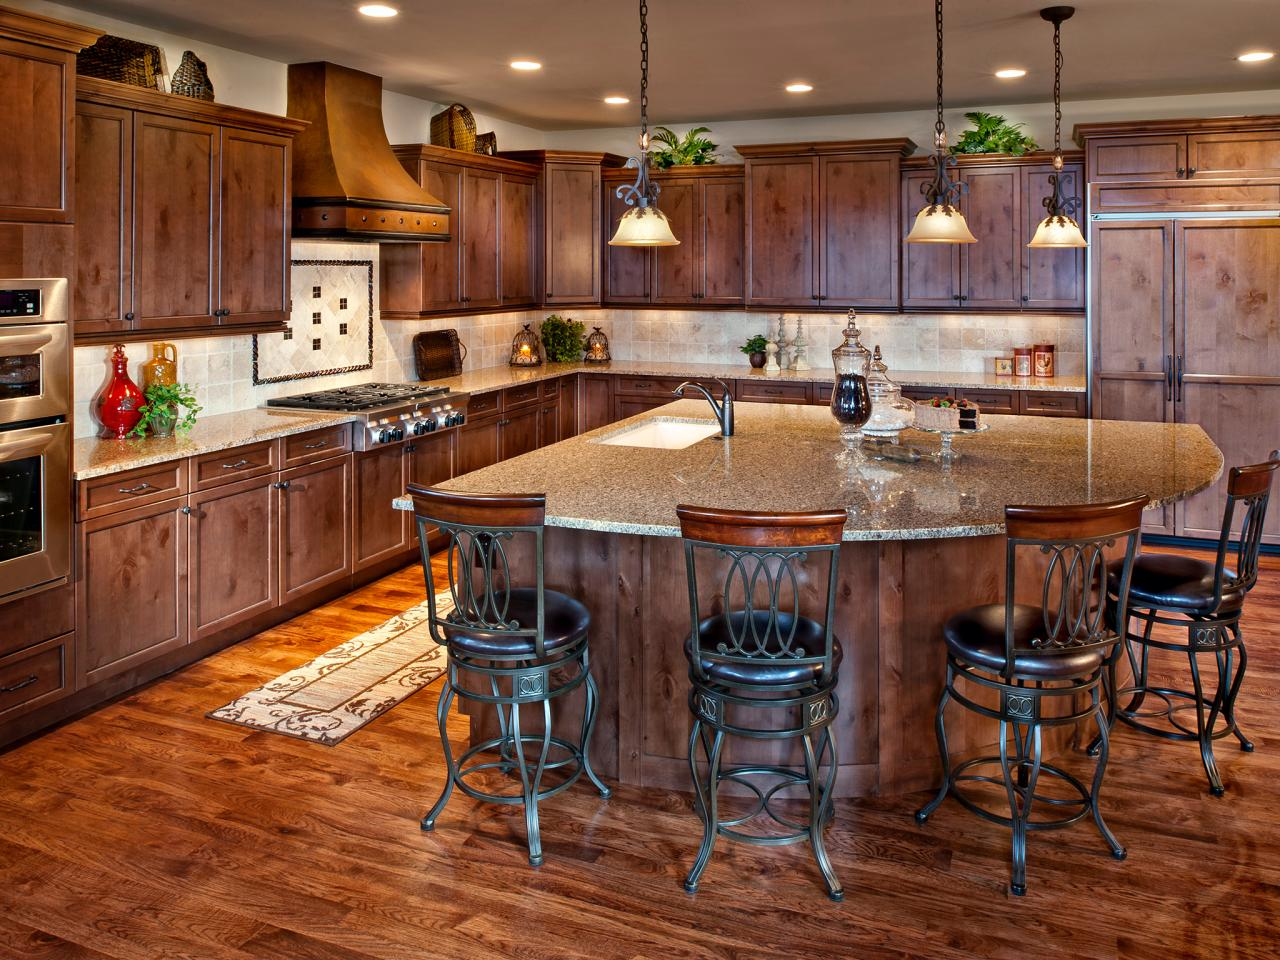 Italian Kitchen Design Ideas & Tips From HGTV